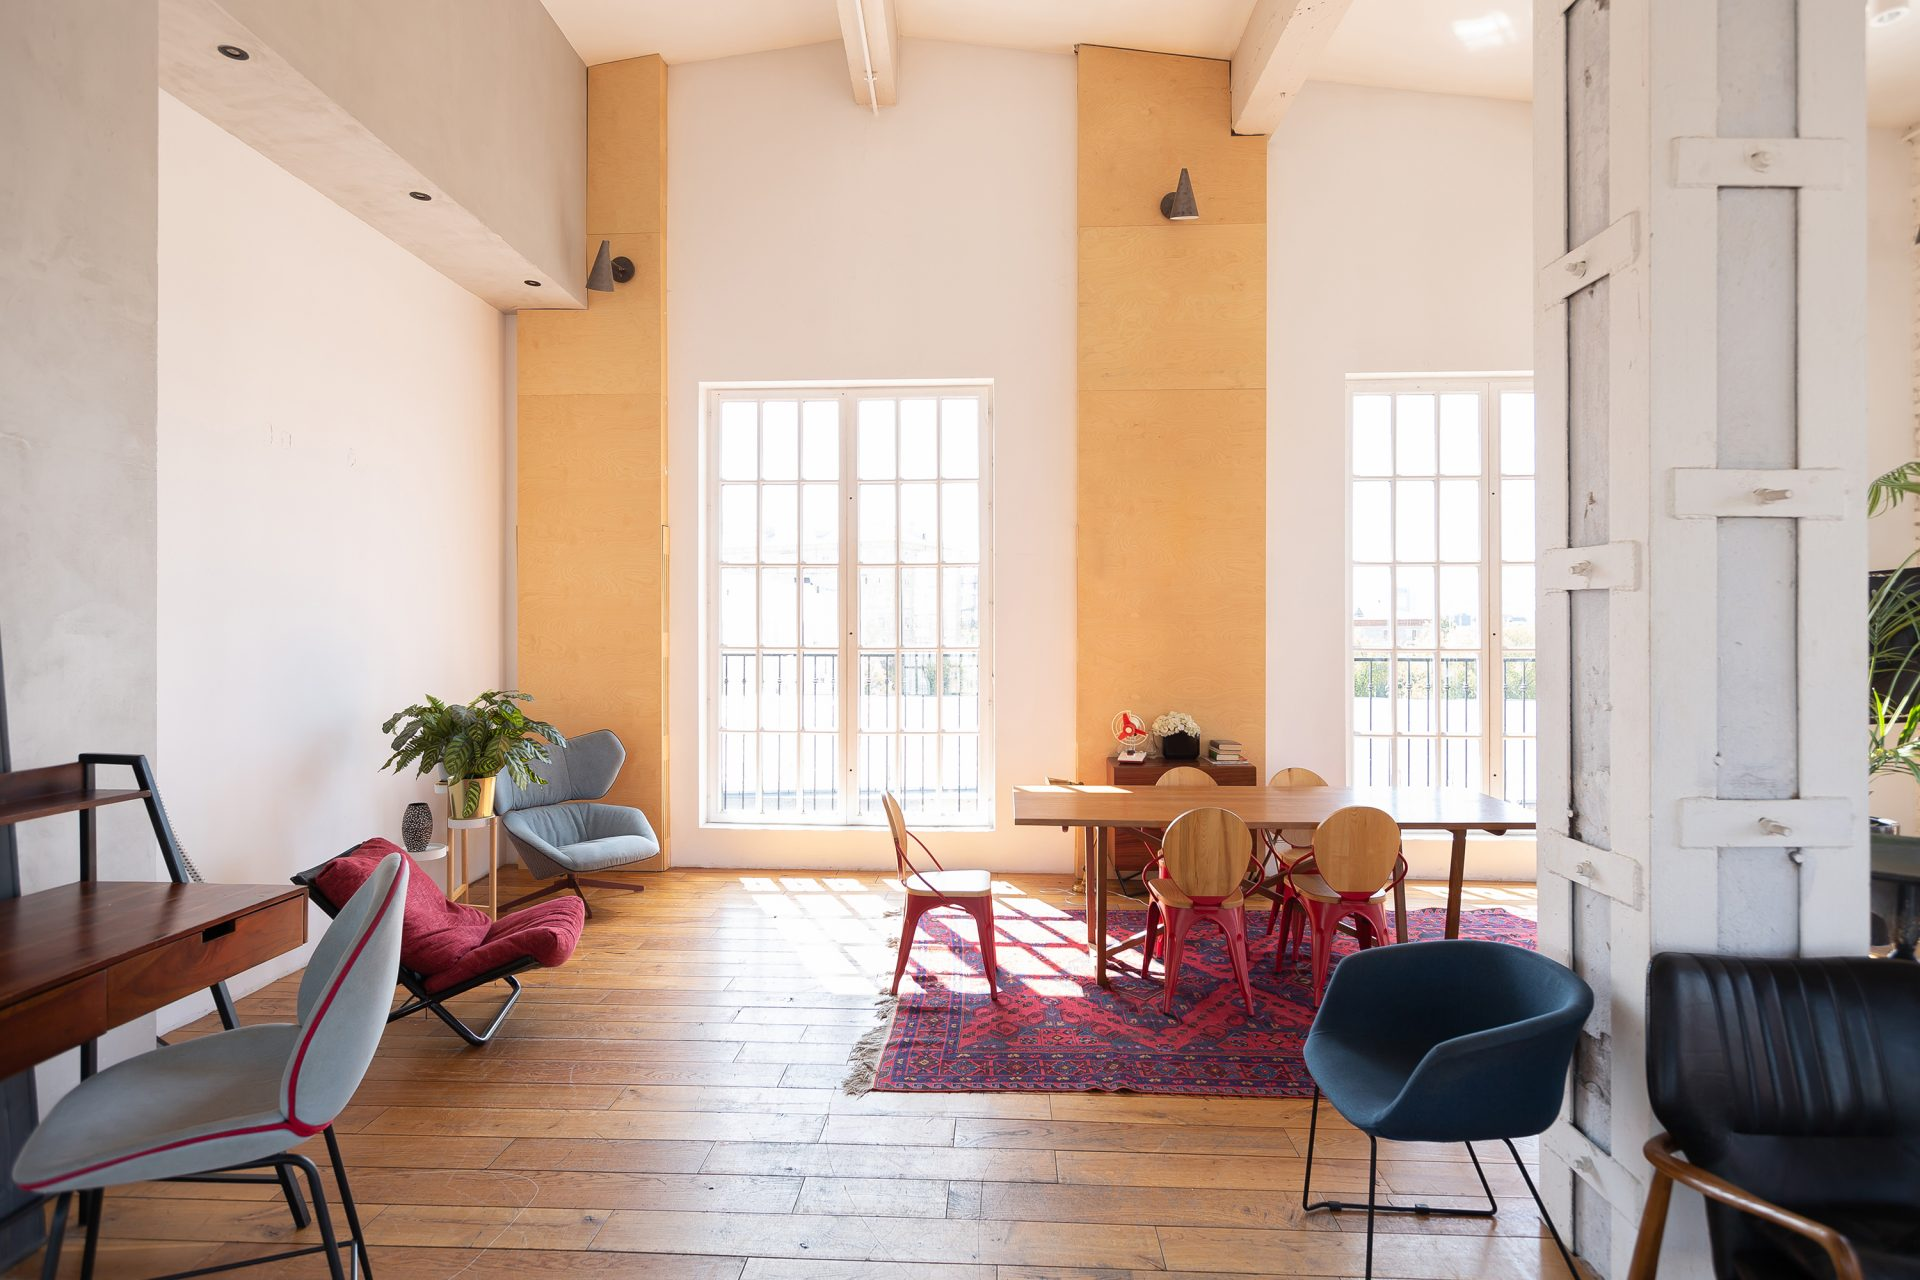 modern-design-of-a-huge-white-bright-room-with-two-red-sofas-and-many-large-windows-full-of-sunshine-high-ceiling-and-wooden-parquet